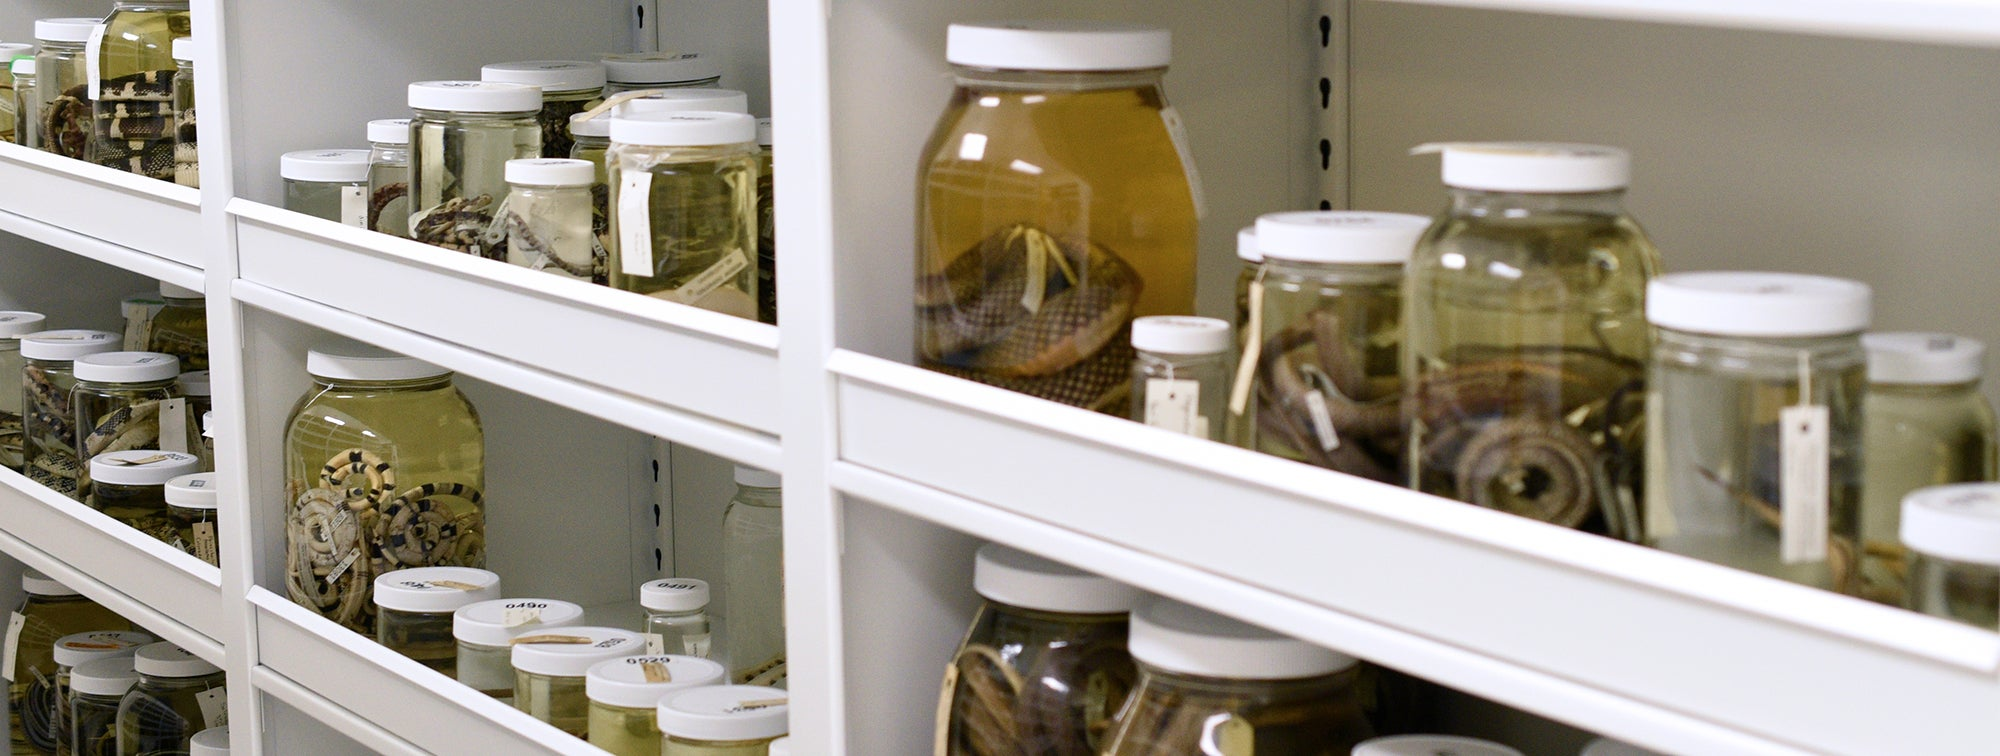 snake specimens in jars